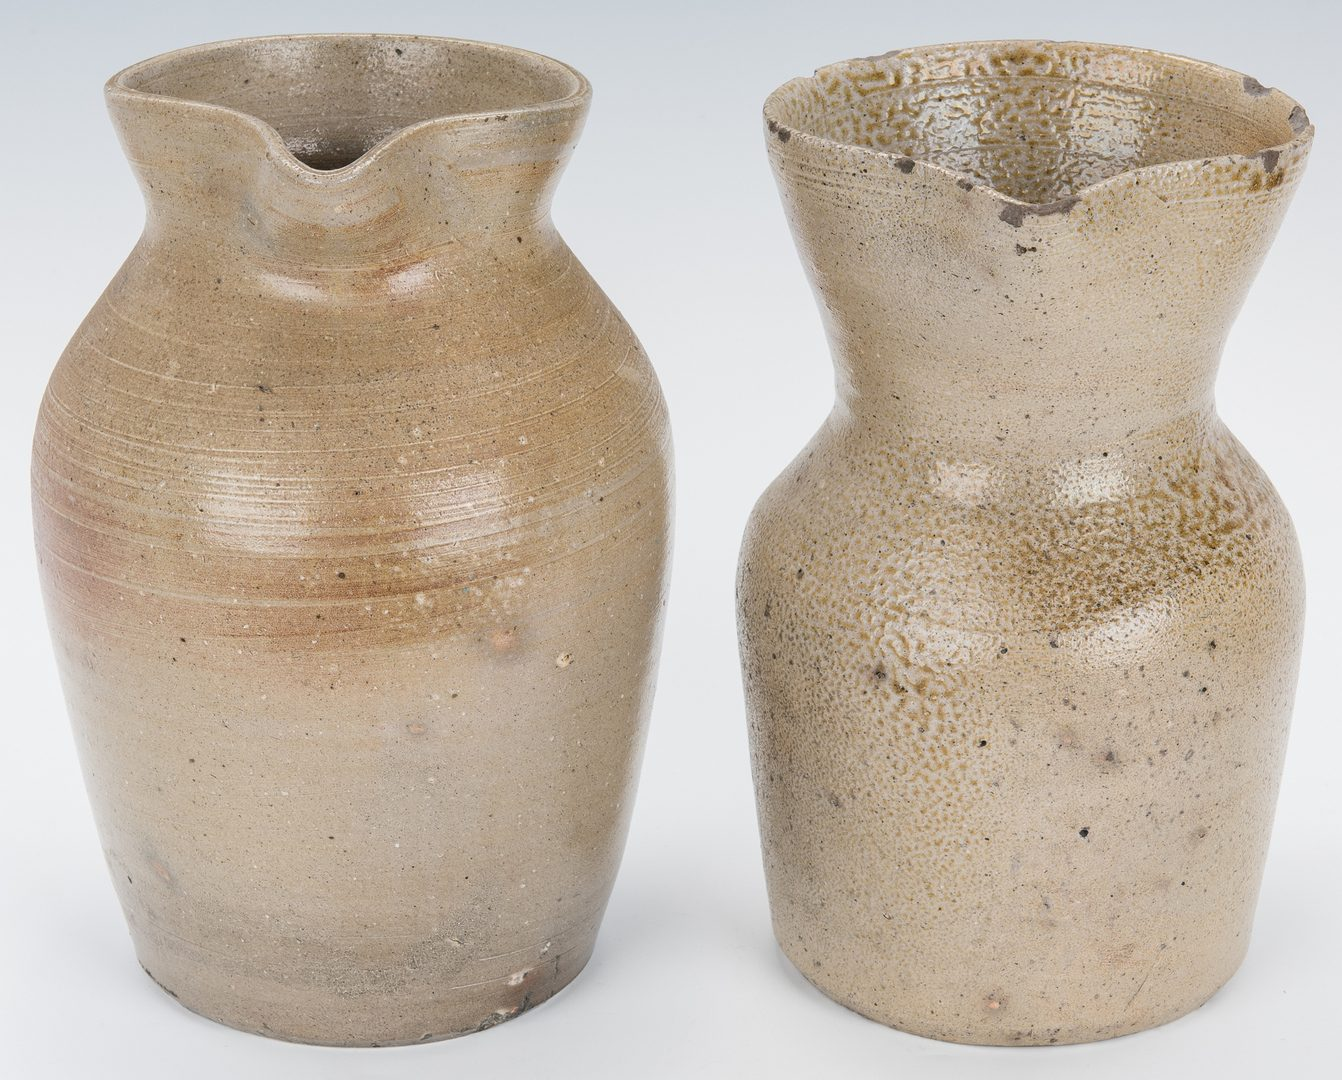 Lot 190: 3 NC Pottery Items, 2 poss. Rance Steed